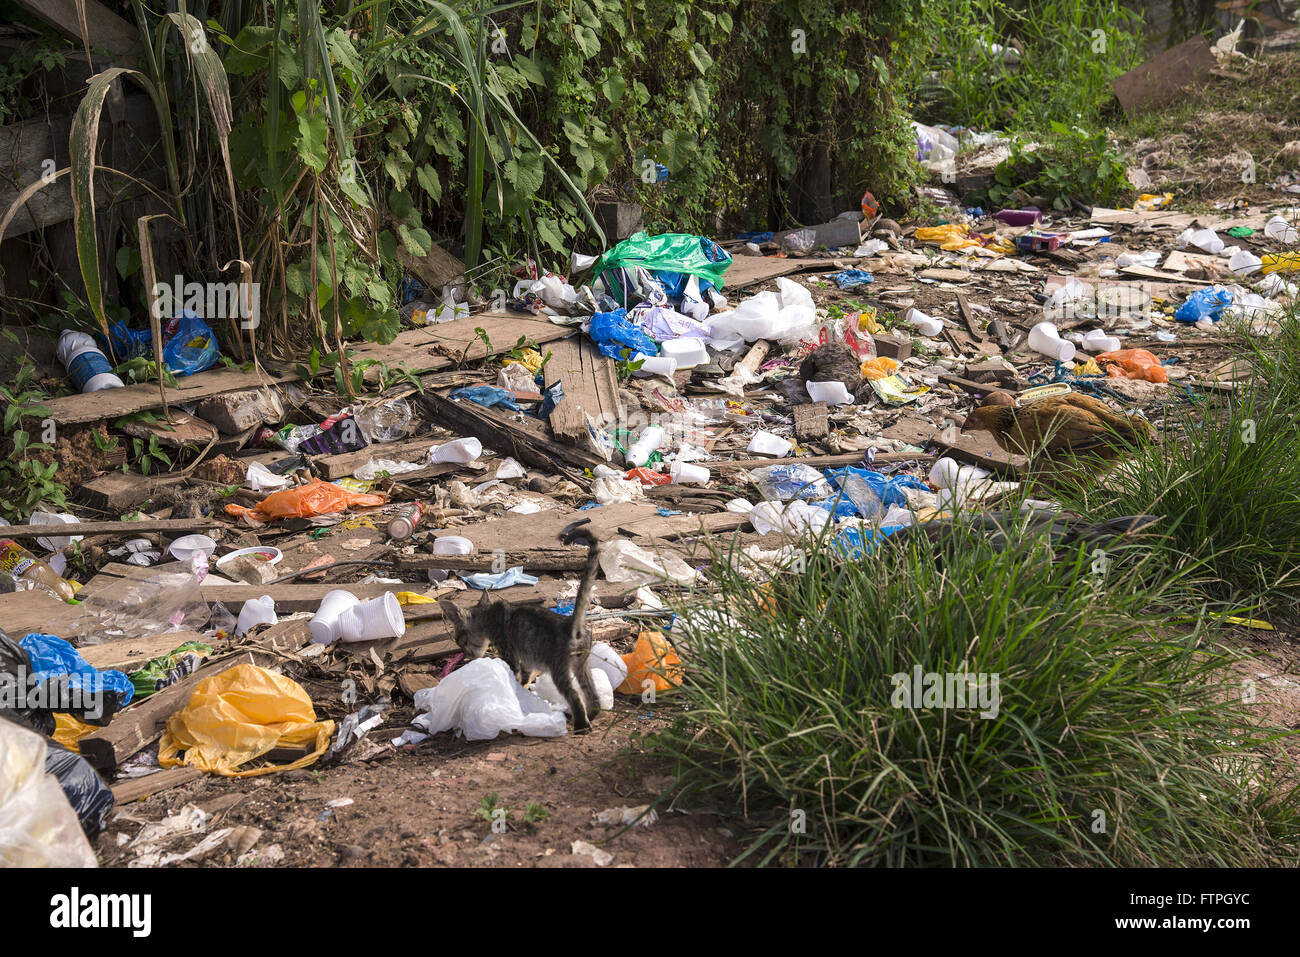 Discarded trash in nature by residents of Vila Gutierrez - Stock Image